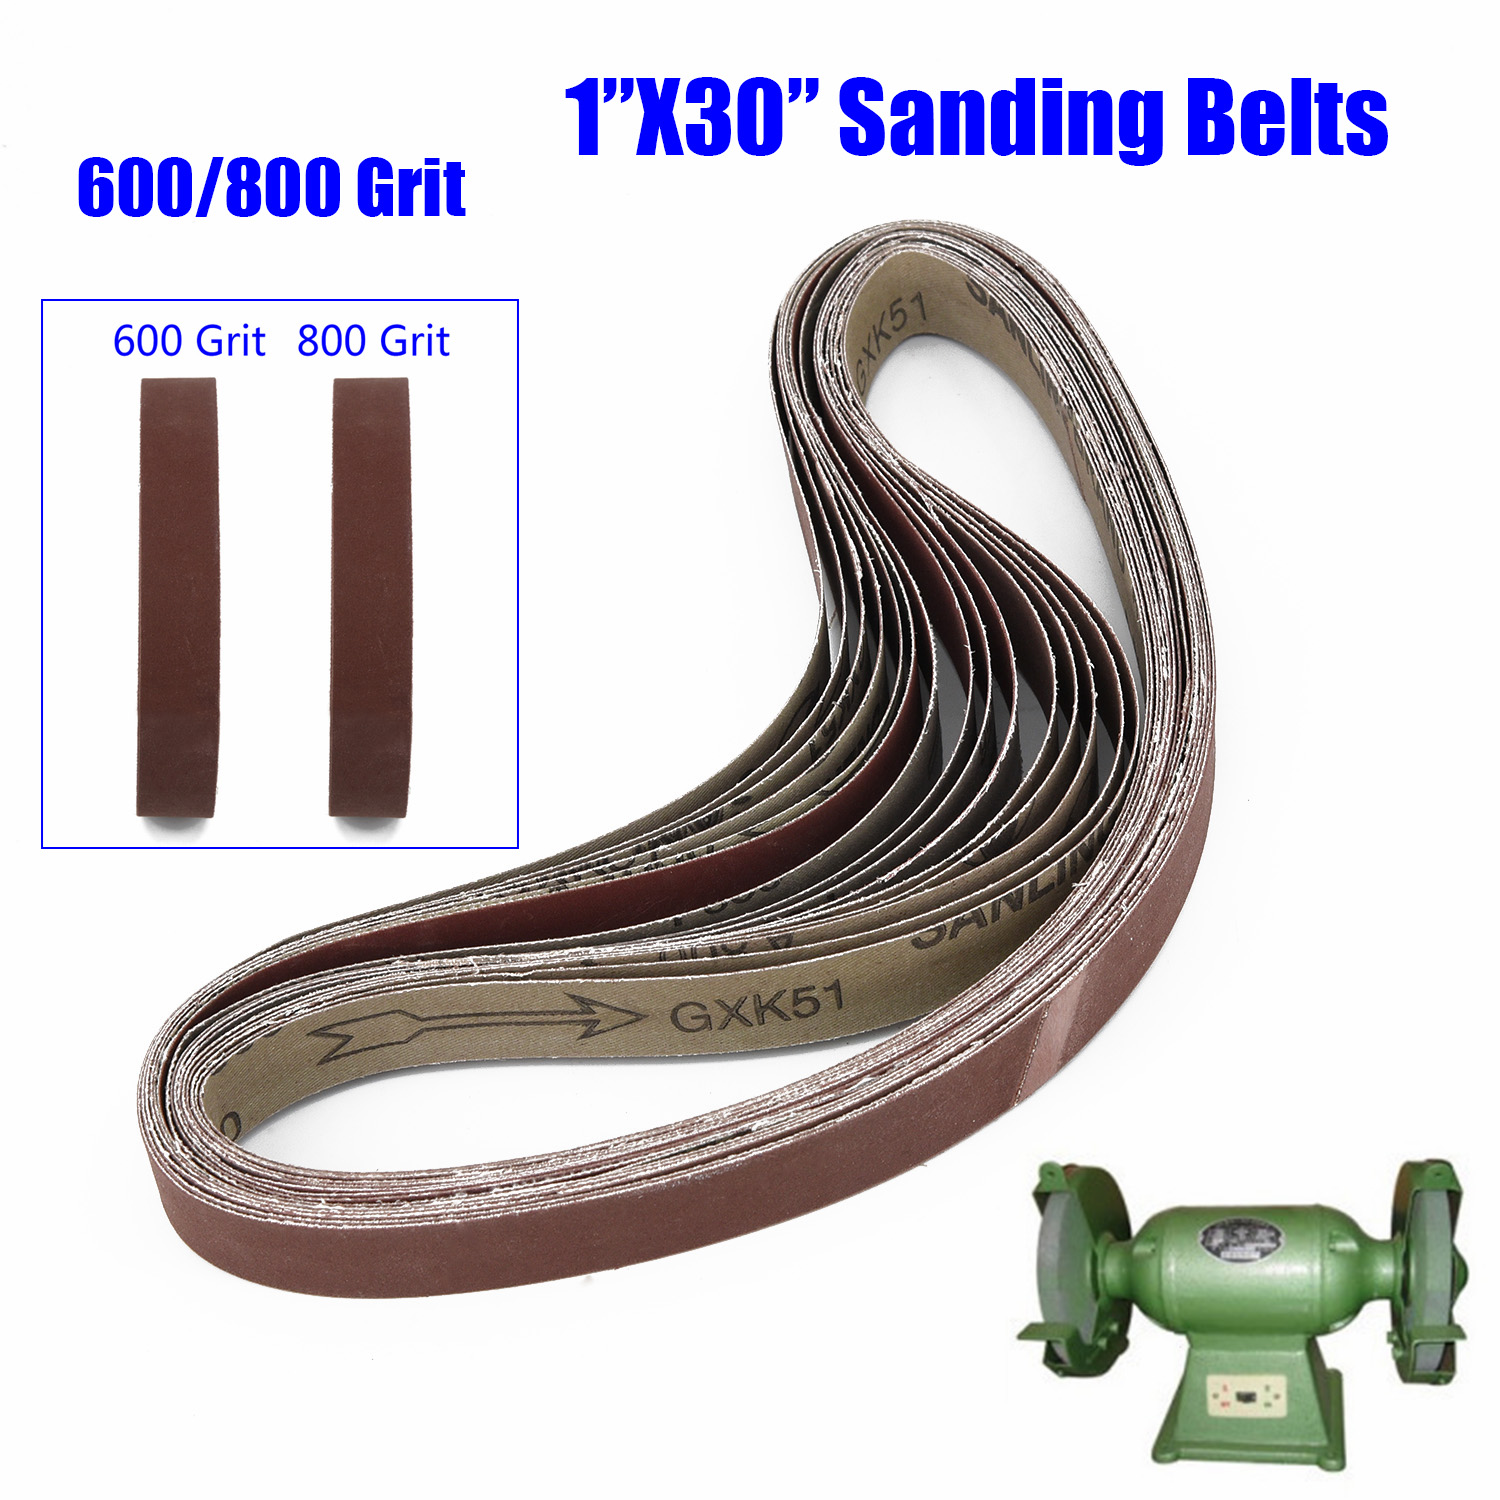 1*30 Sanding Belt Powertec 600/800/1000 Grit Aluminum Oxide 15pcs Durable